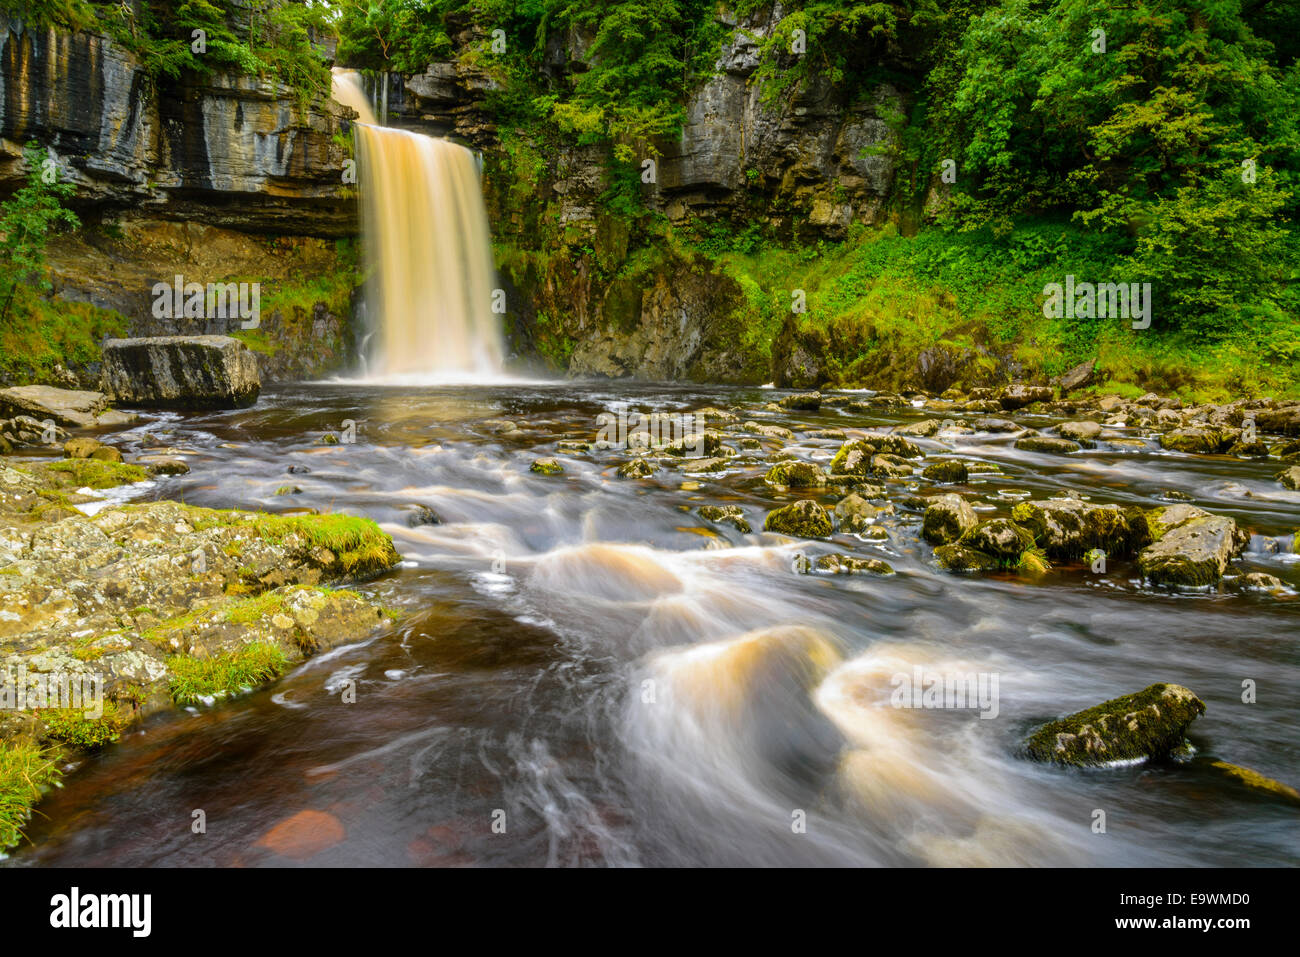 Thornton Force near Ingleton in the Yorkshire Dales National Park - Stock Image